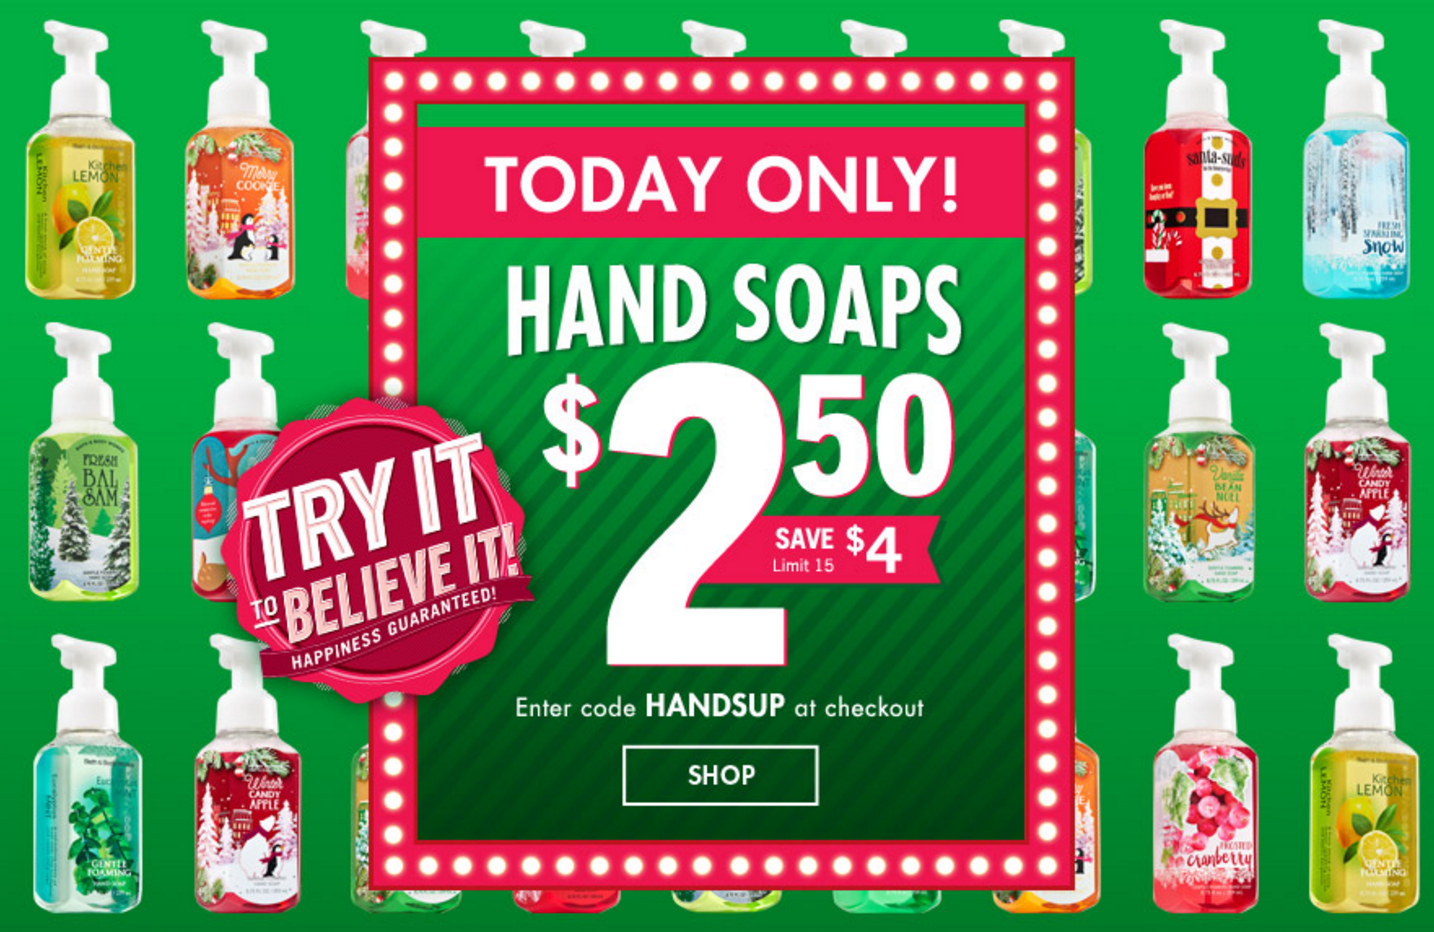 Bath & Body Works: ALL Hand Soaps Only $2.50 (Reg. $6.50!) – Today Only!